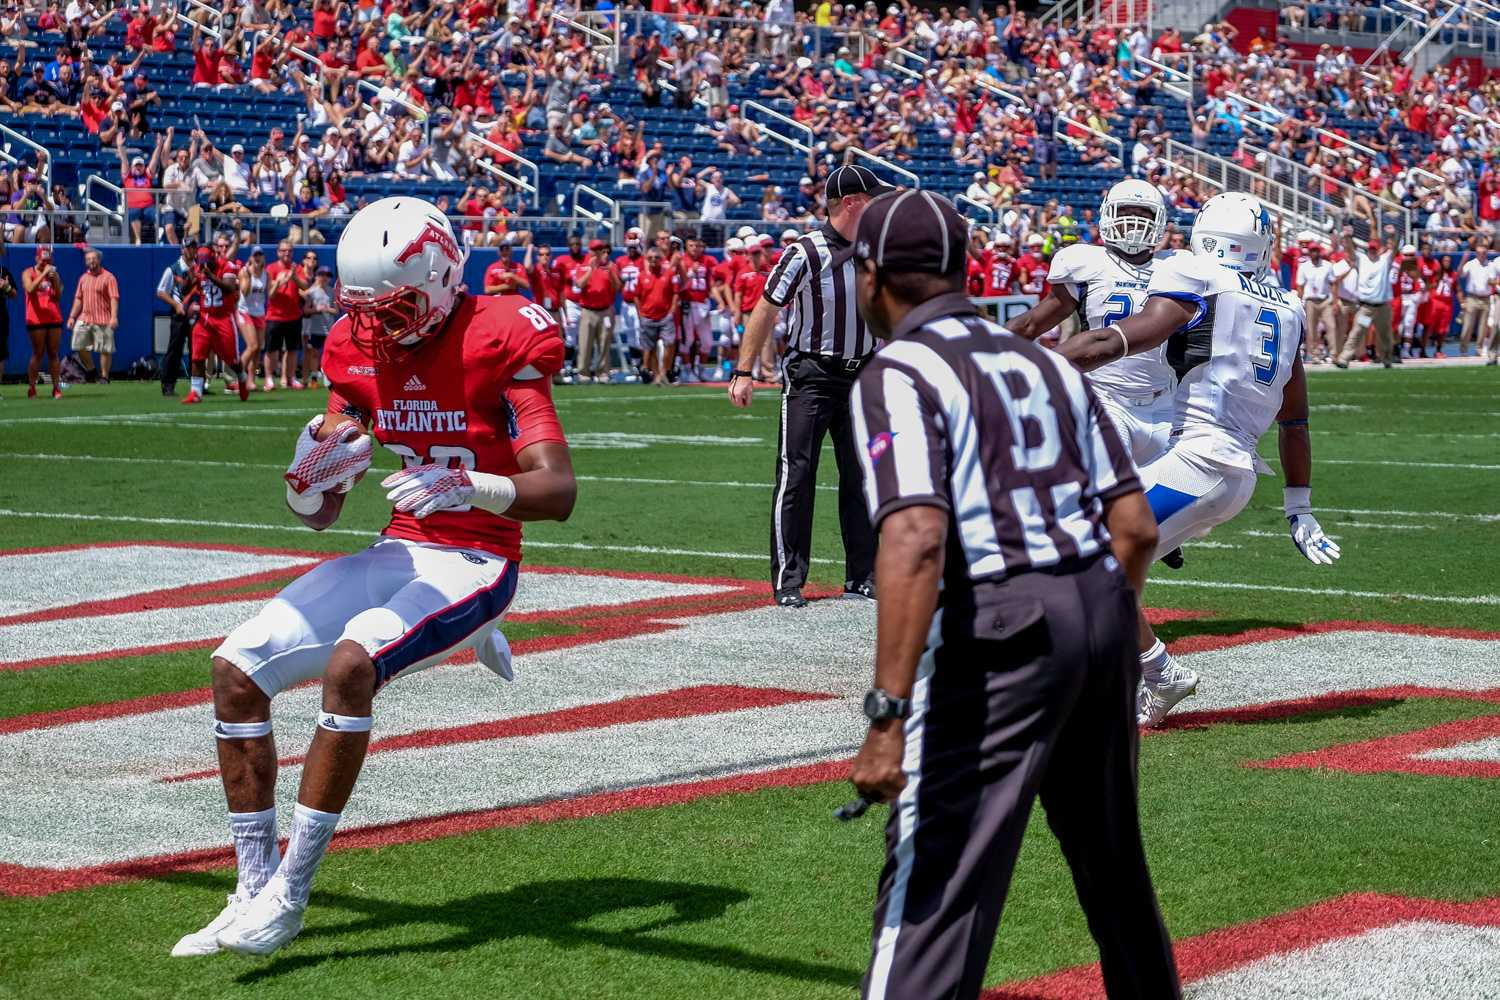 Sophomore tight end Nate Terry catches the ball in the endzone making the score 9-0 in favor of the Owls. Mohammed F Emran   Staff Photographer